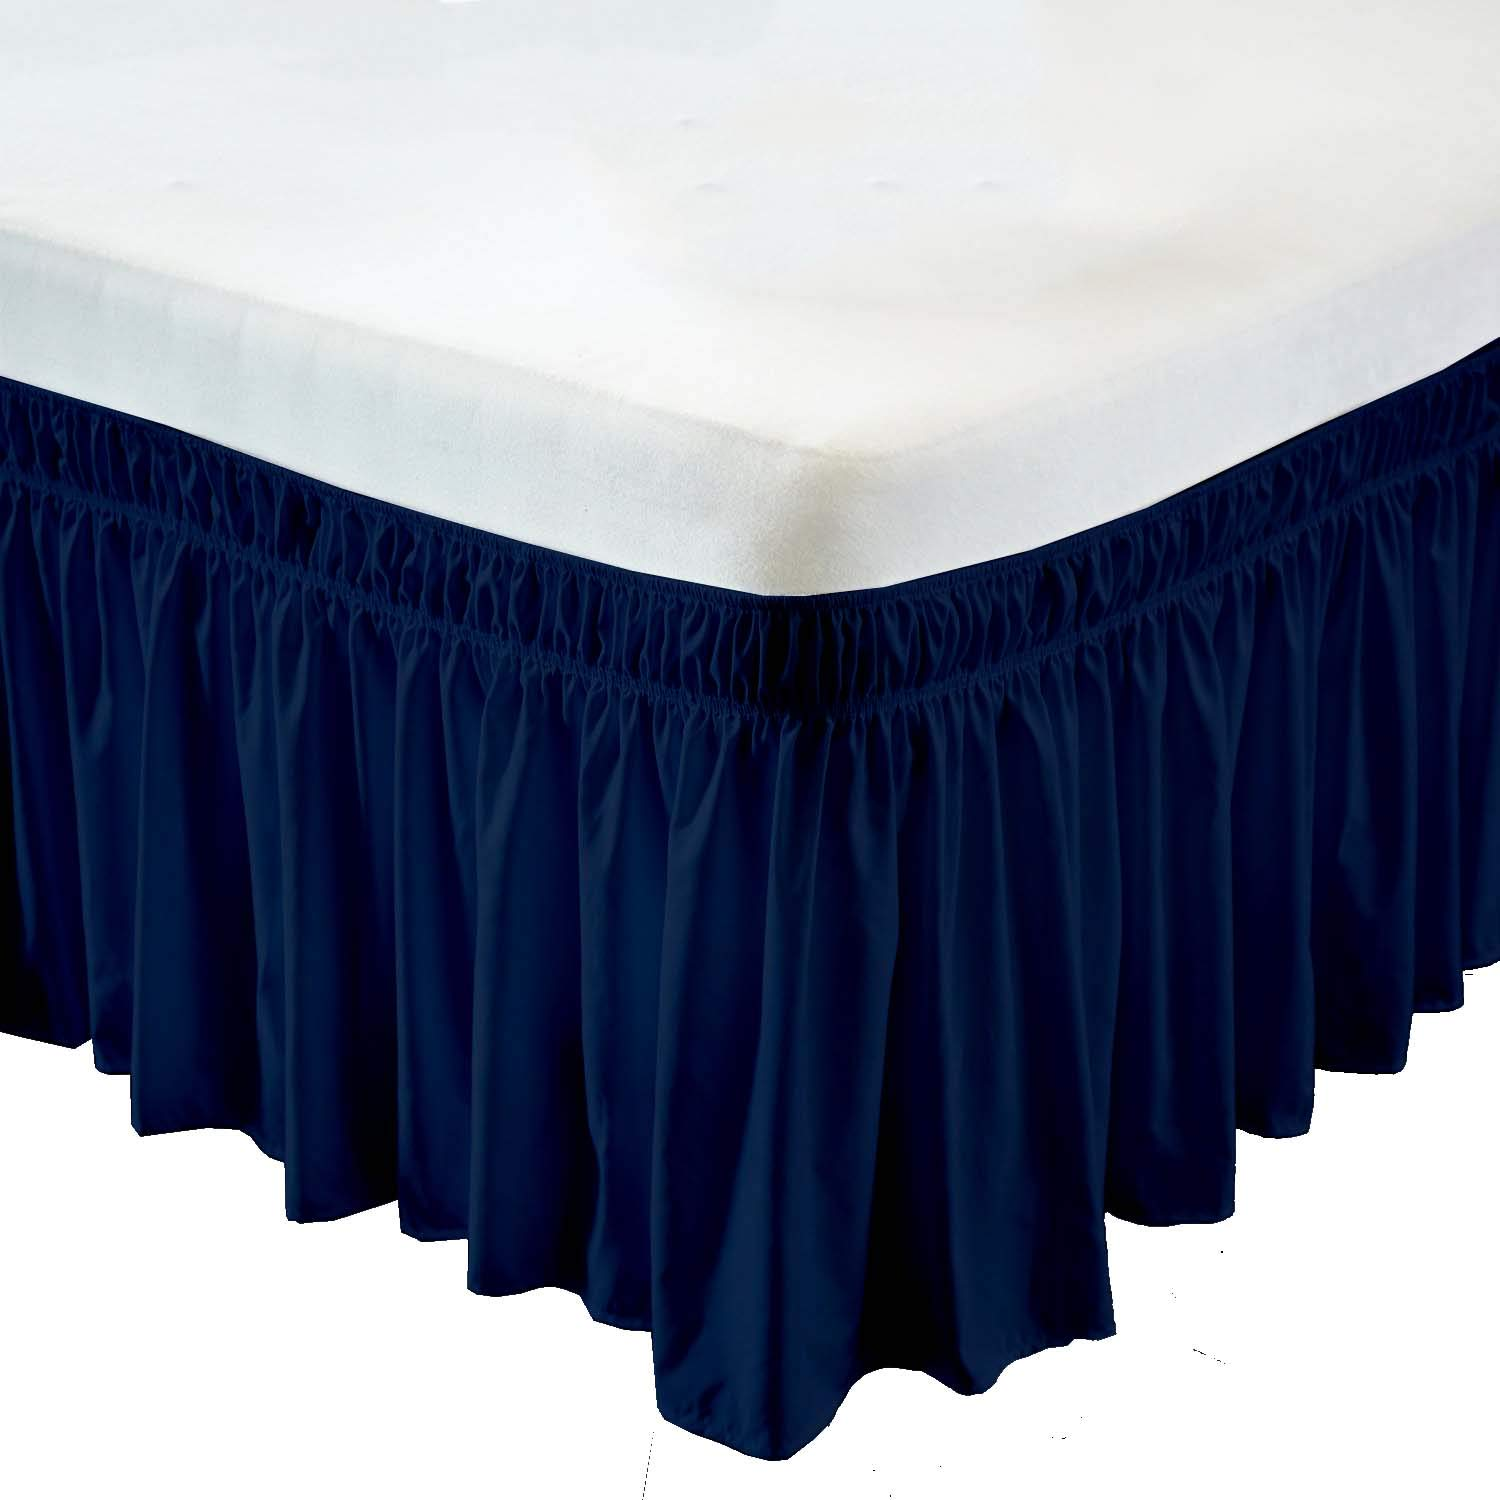 Wrap Around Bed Skirt- 12 Inch Drop Length Style Easy Fit Elastic Bed Ruffles Bed-Skirt Wrinkle Free Bed Skirt - Navy Blue, Queen in All Bed Sizes and Colors